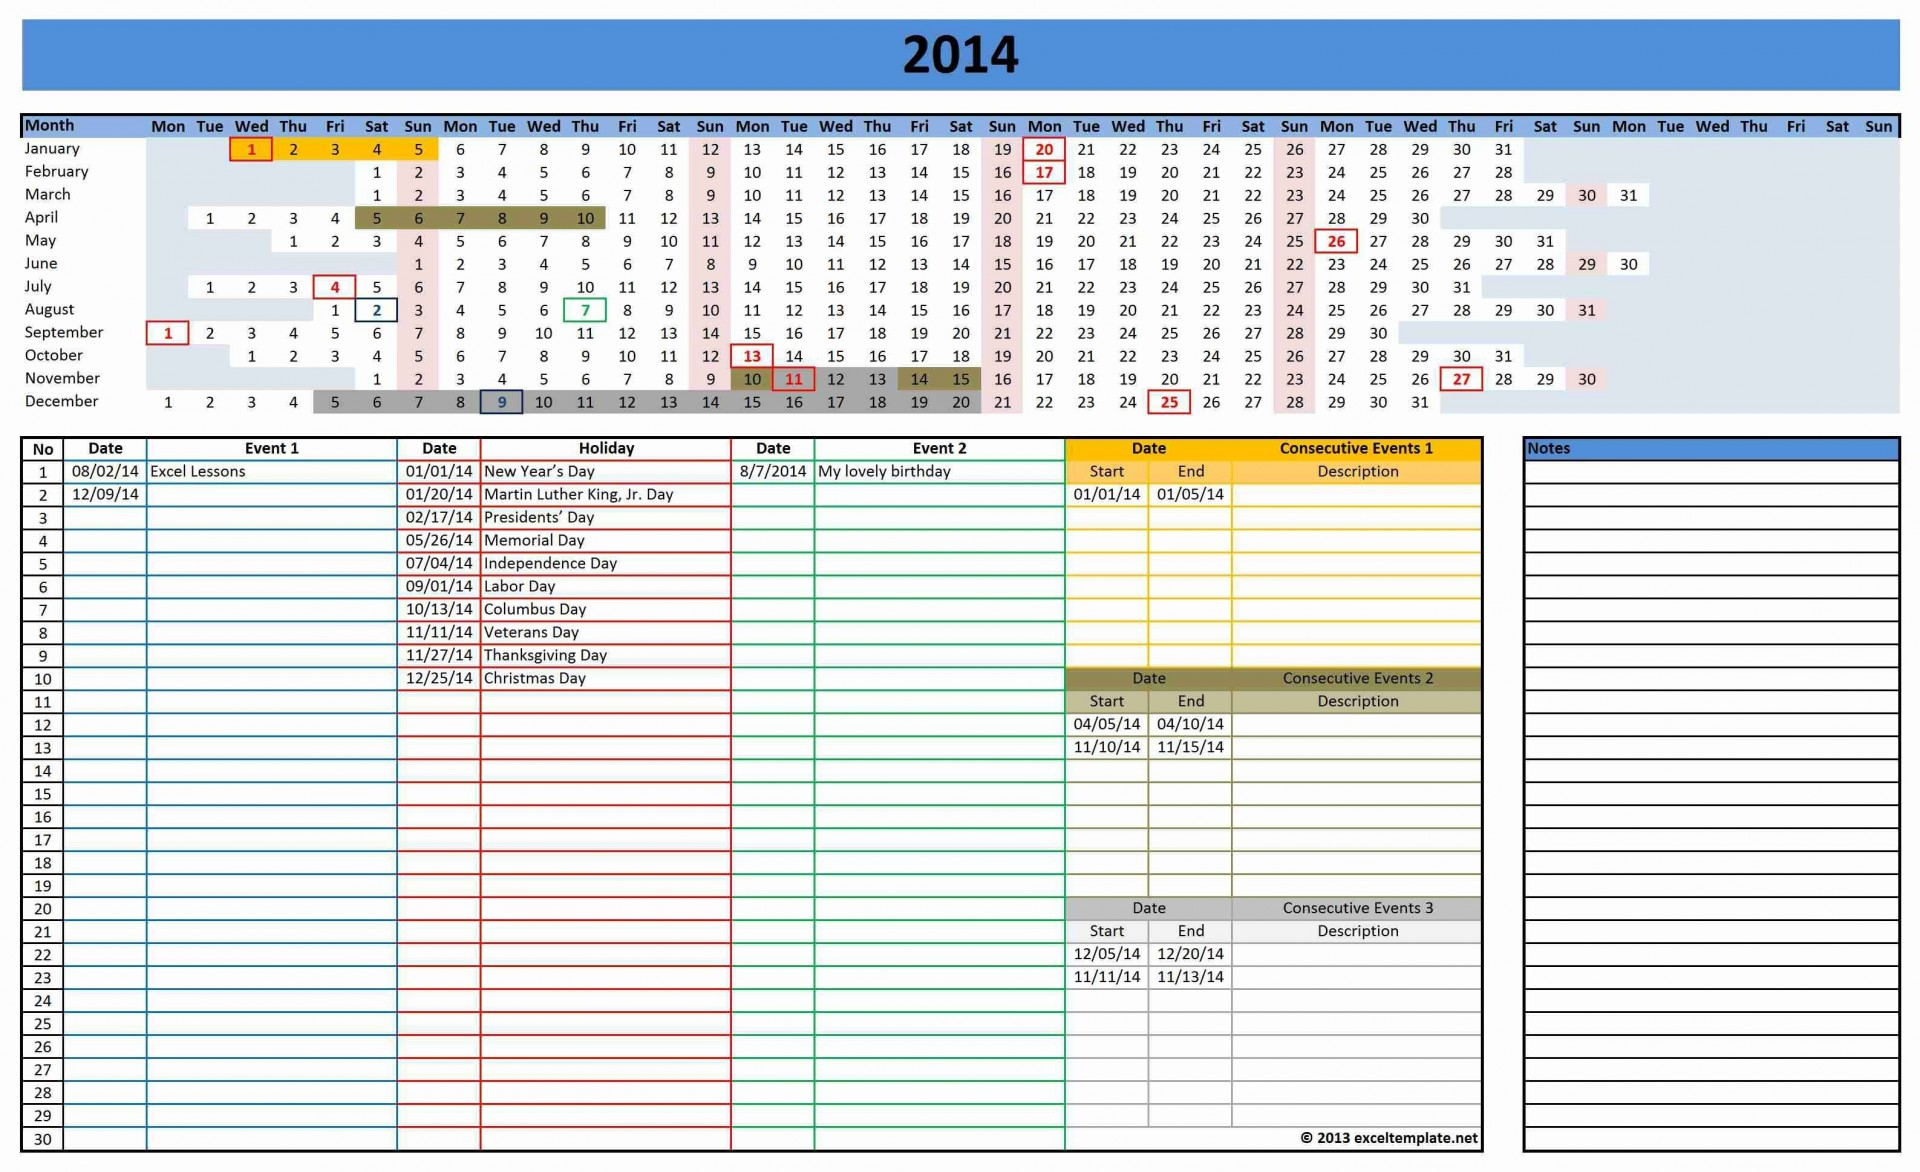 000 Excellent Microsoft Excel Calendar Template Idea  Office 2013 M Yearly 20191920